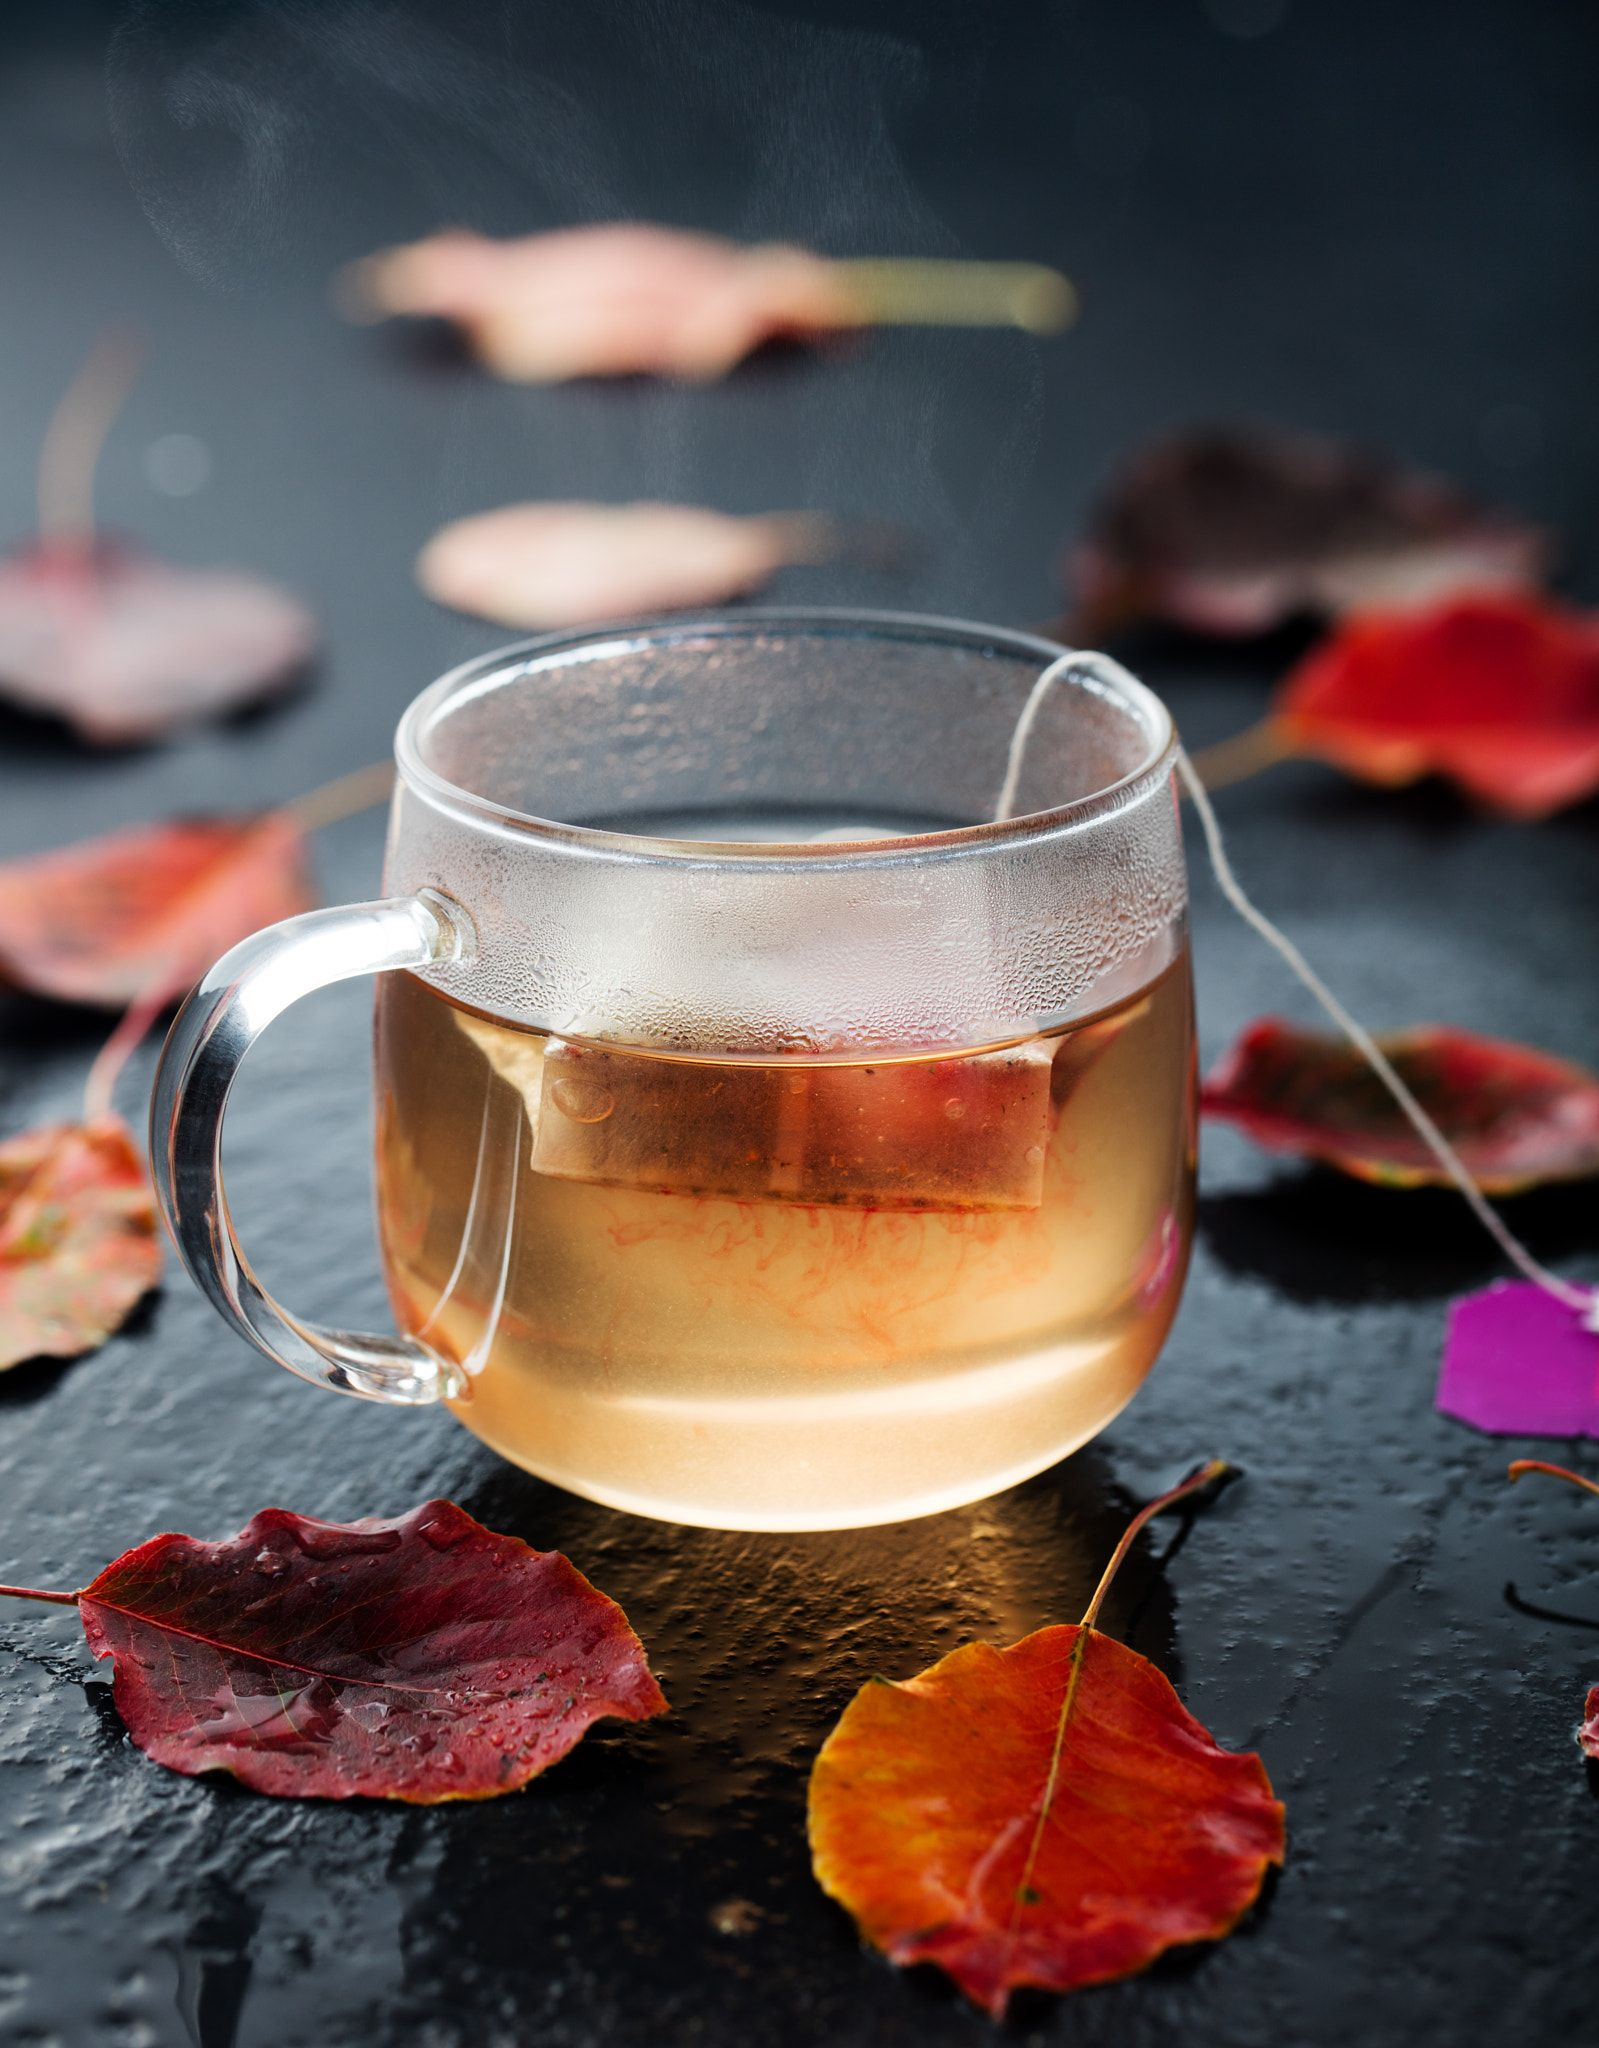 Cup of herbal and fruit tea with autumn leaves  Cup of tea with